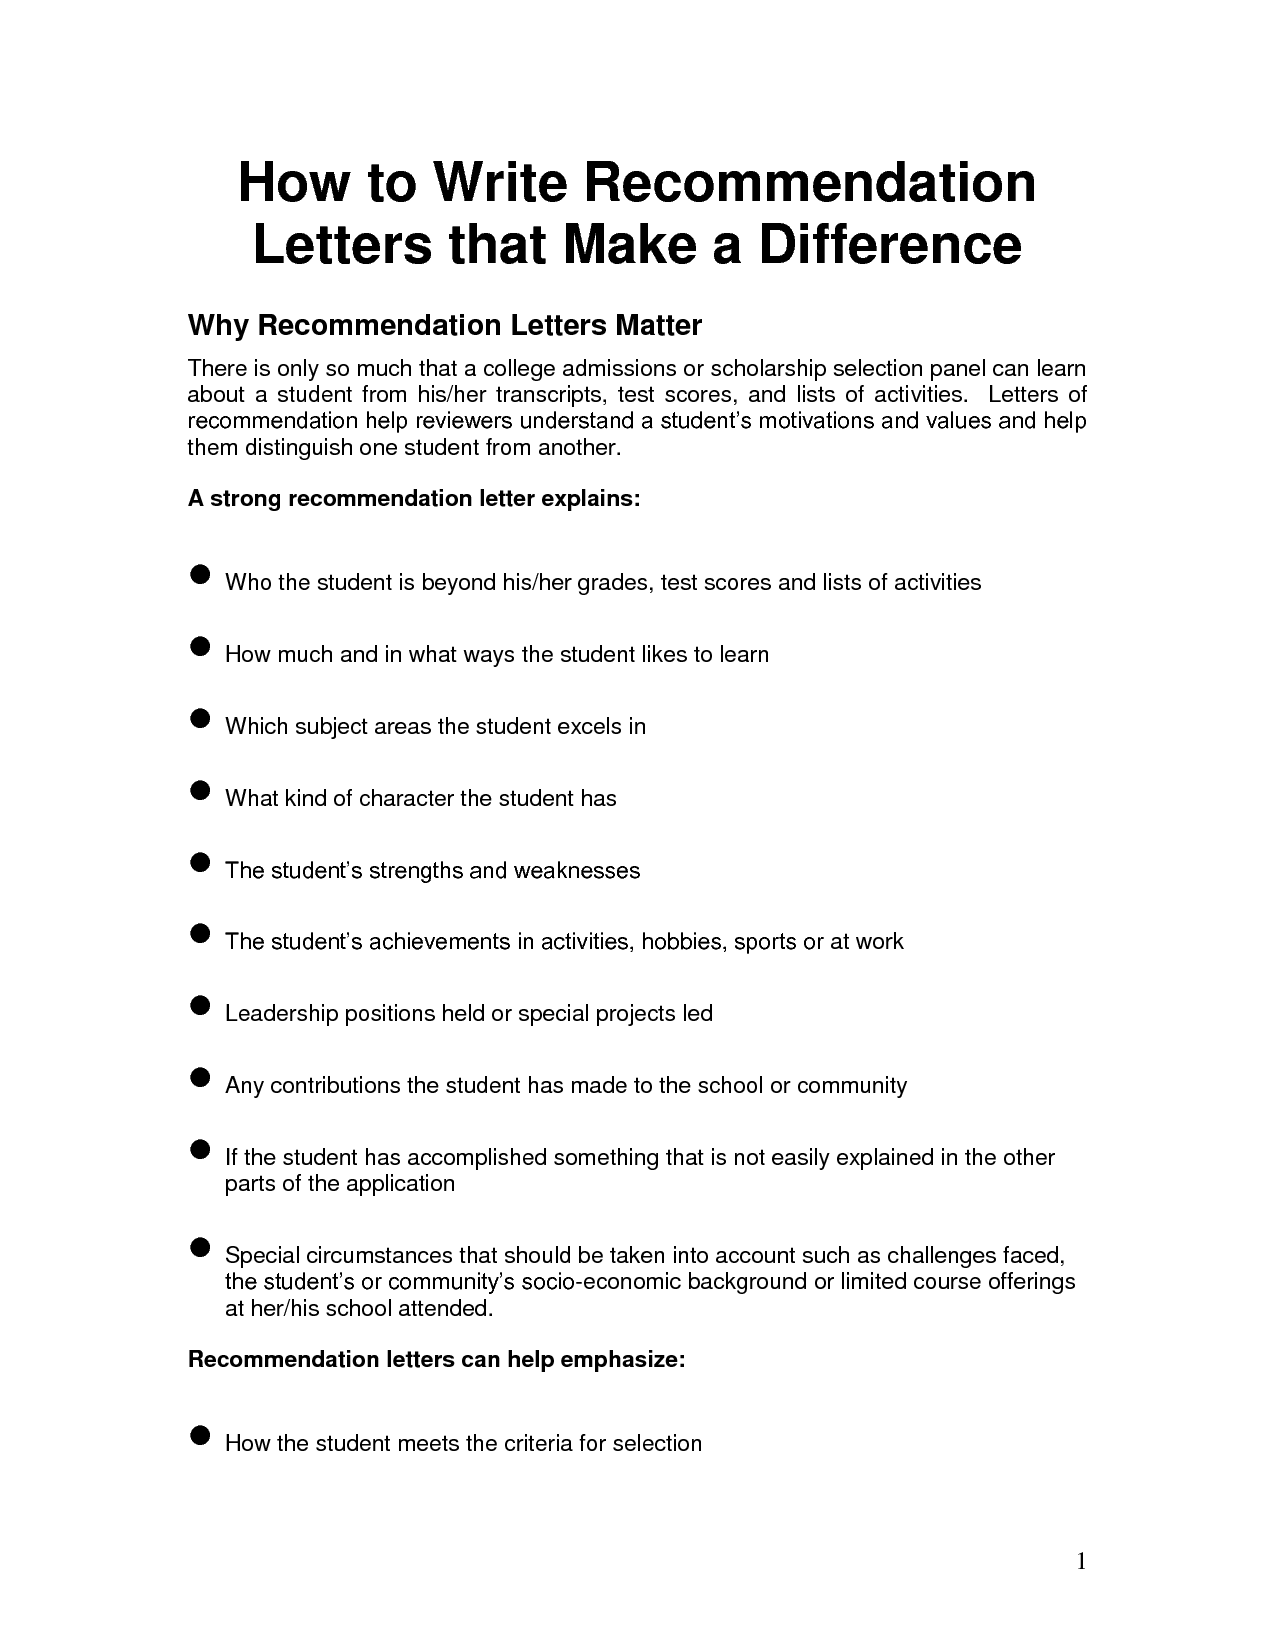 Tips for Writing College Recommendation Letters